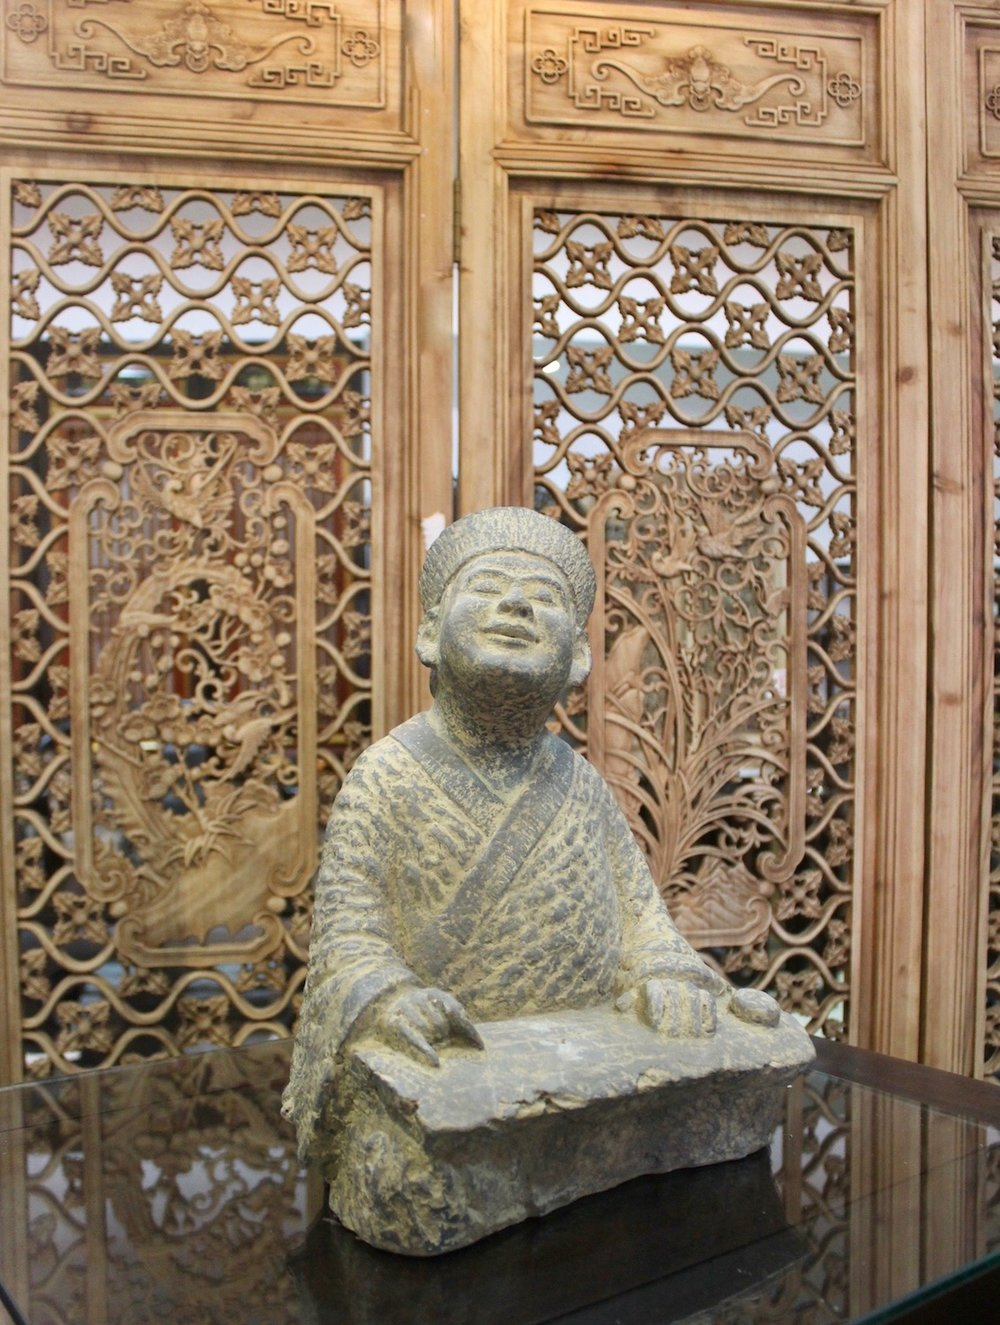 Stone zither player (reproduction)